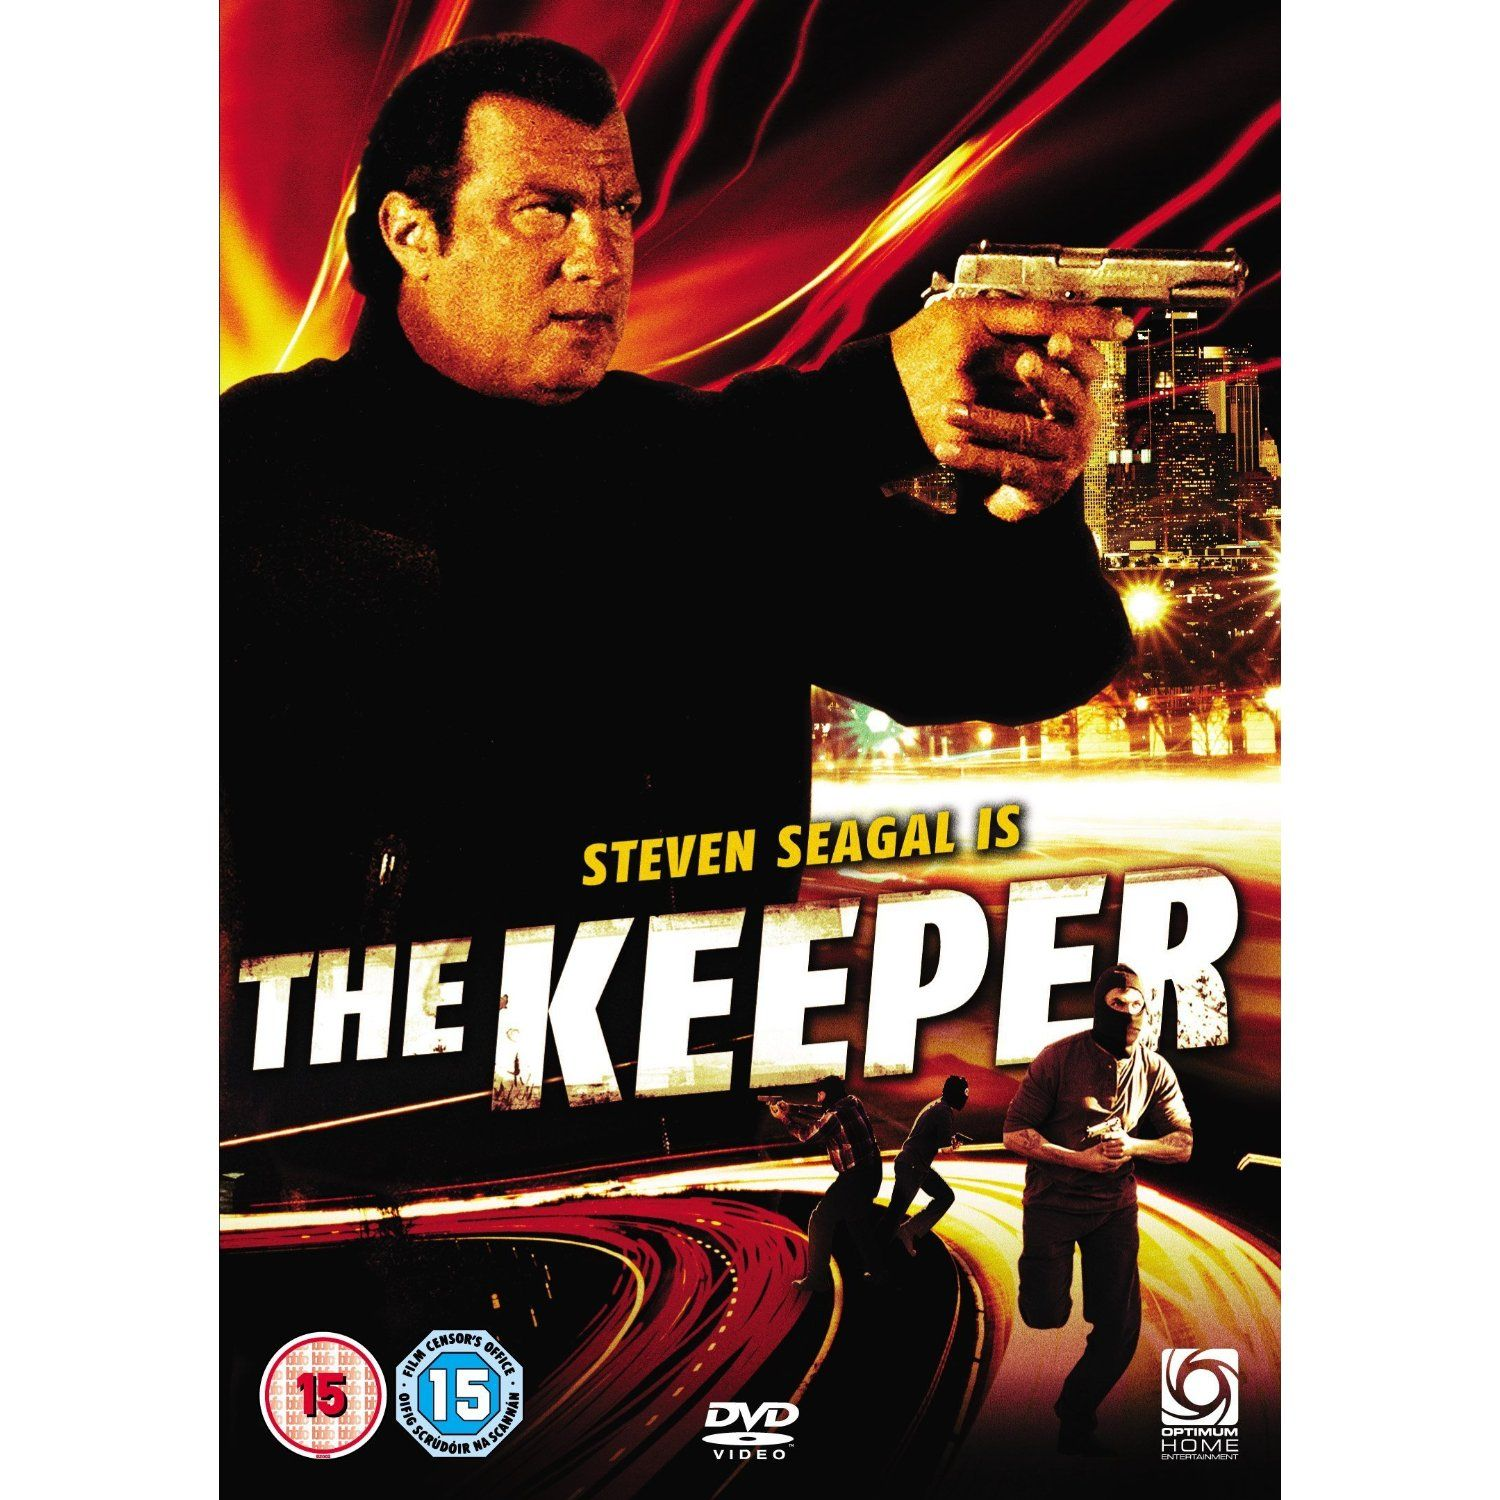 The Keeper (DVD, 2009) | See best ideas about Steven seagal and Movie